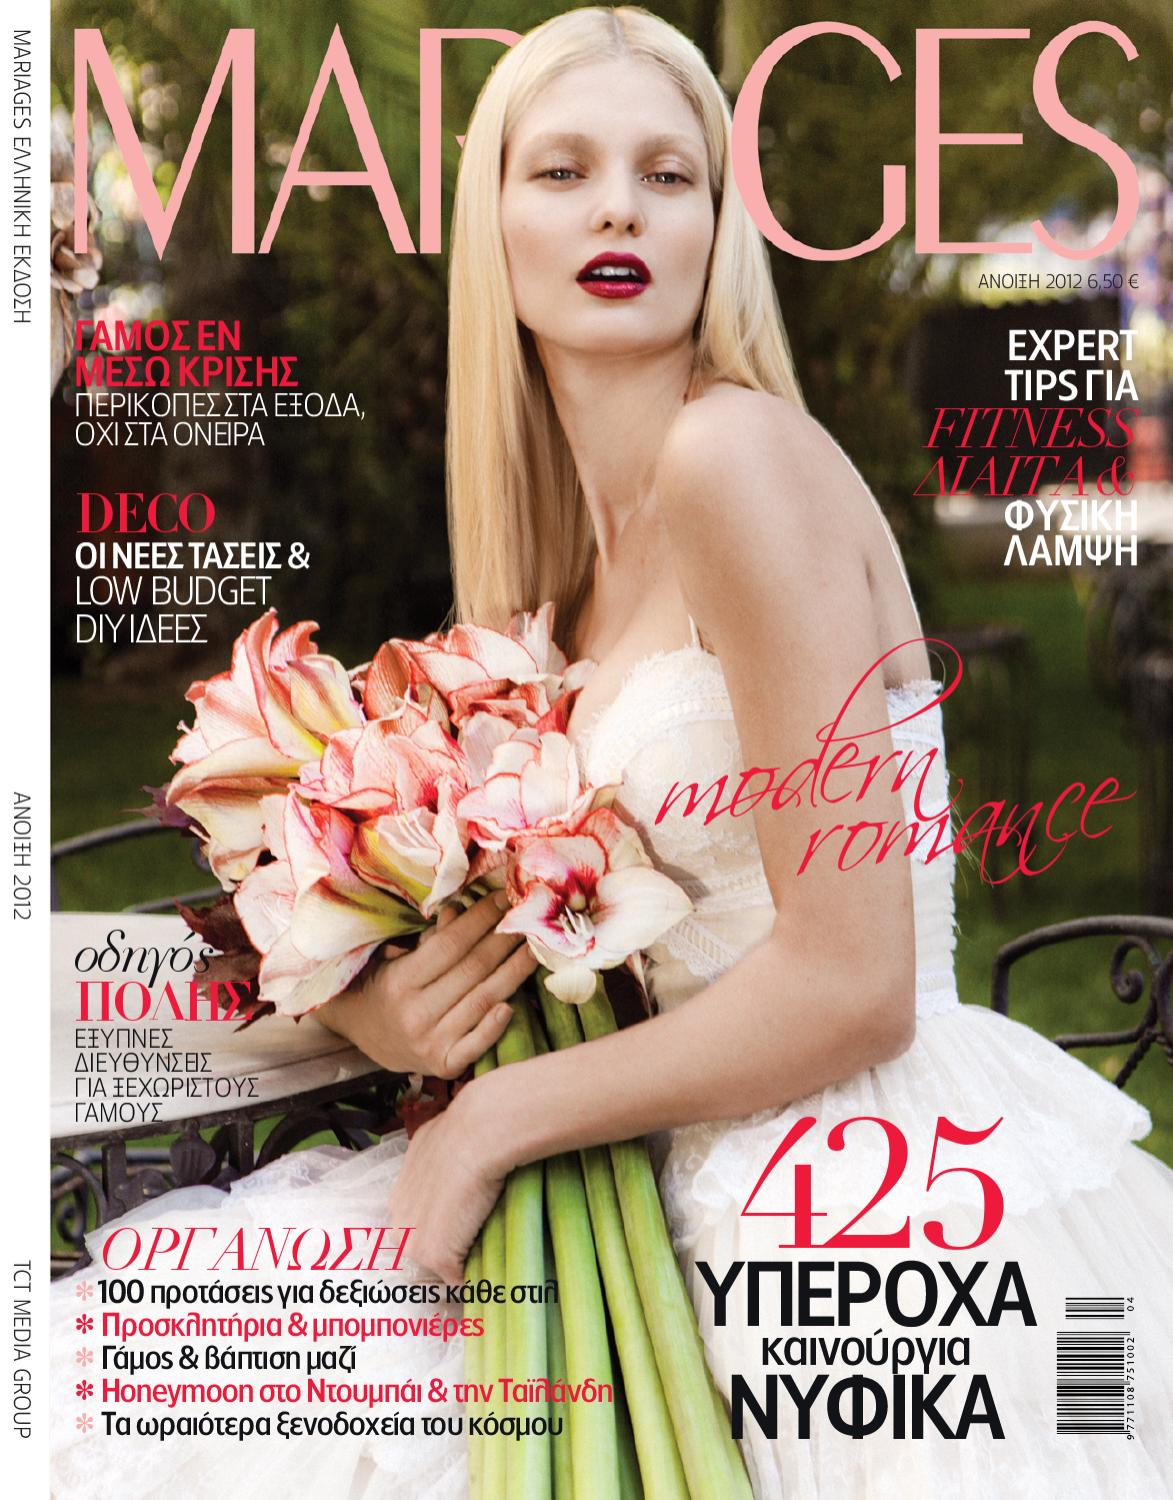 23c69cb44bd0 Mariages Άνοιξη 2012 by TCT MEDIA - issuu